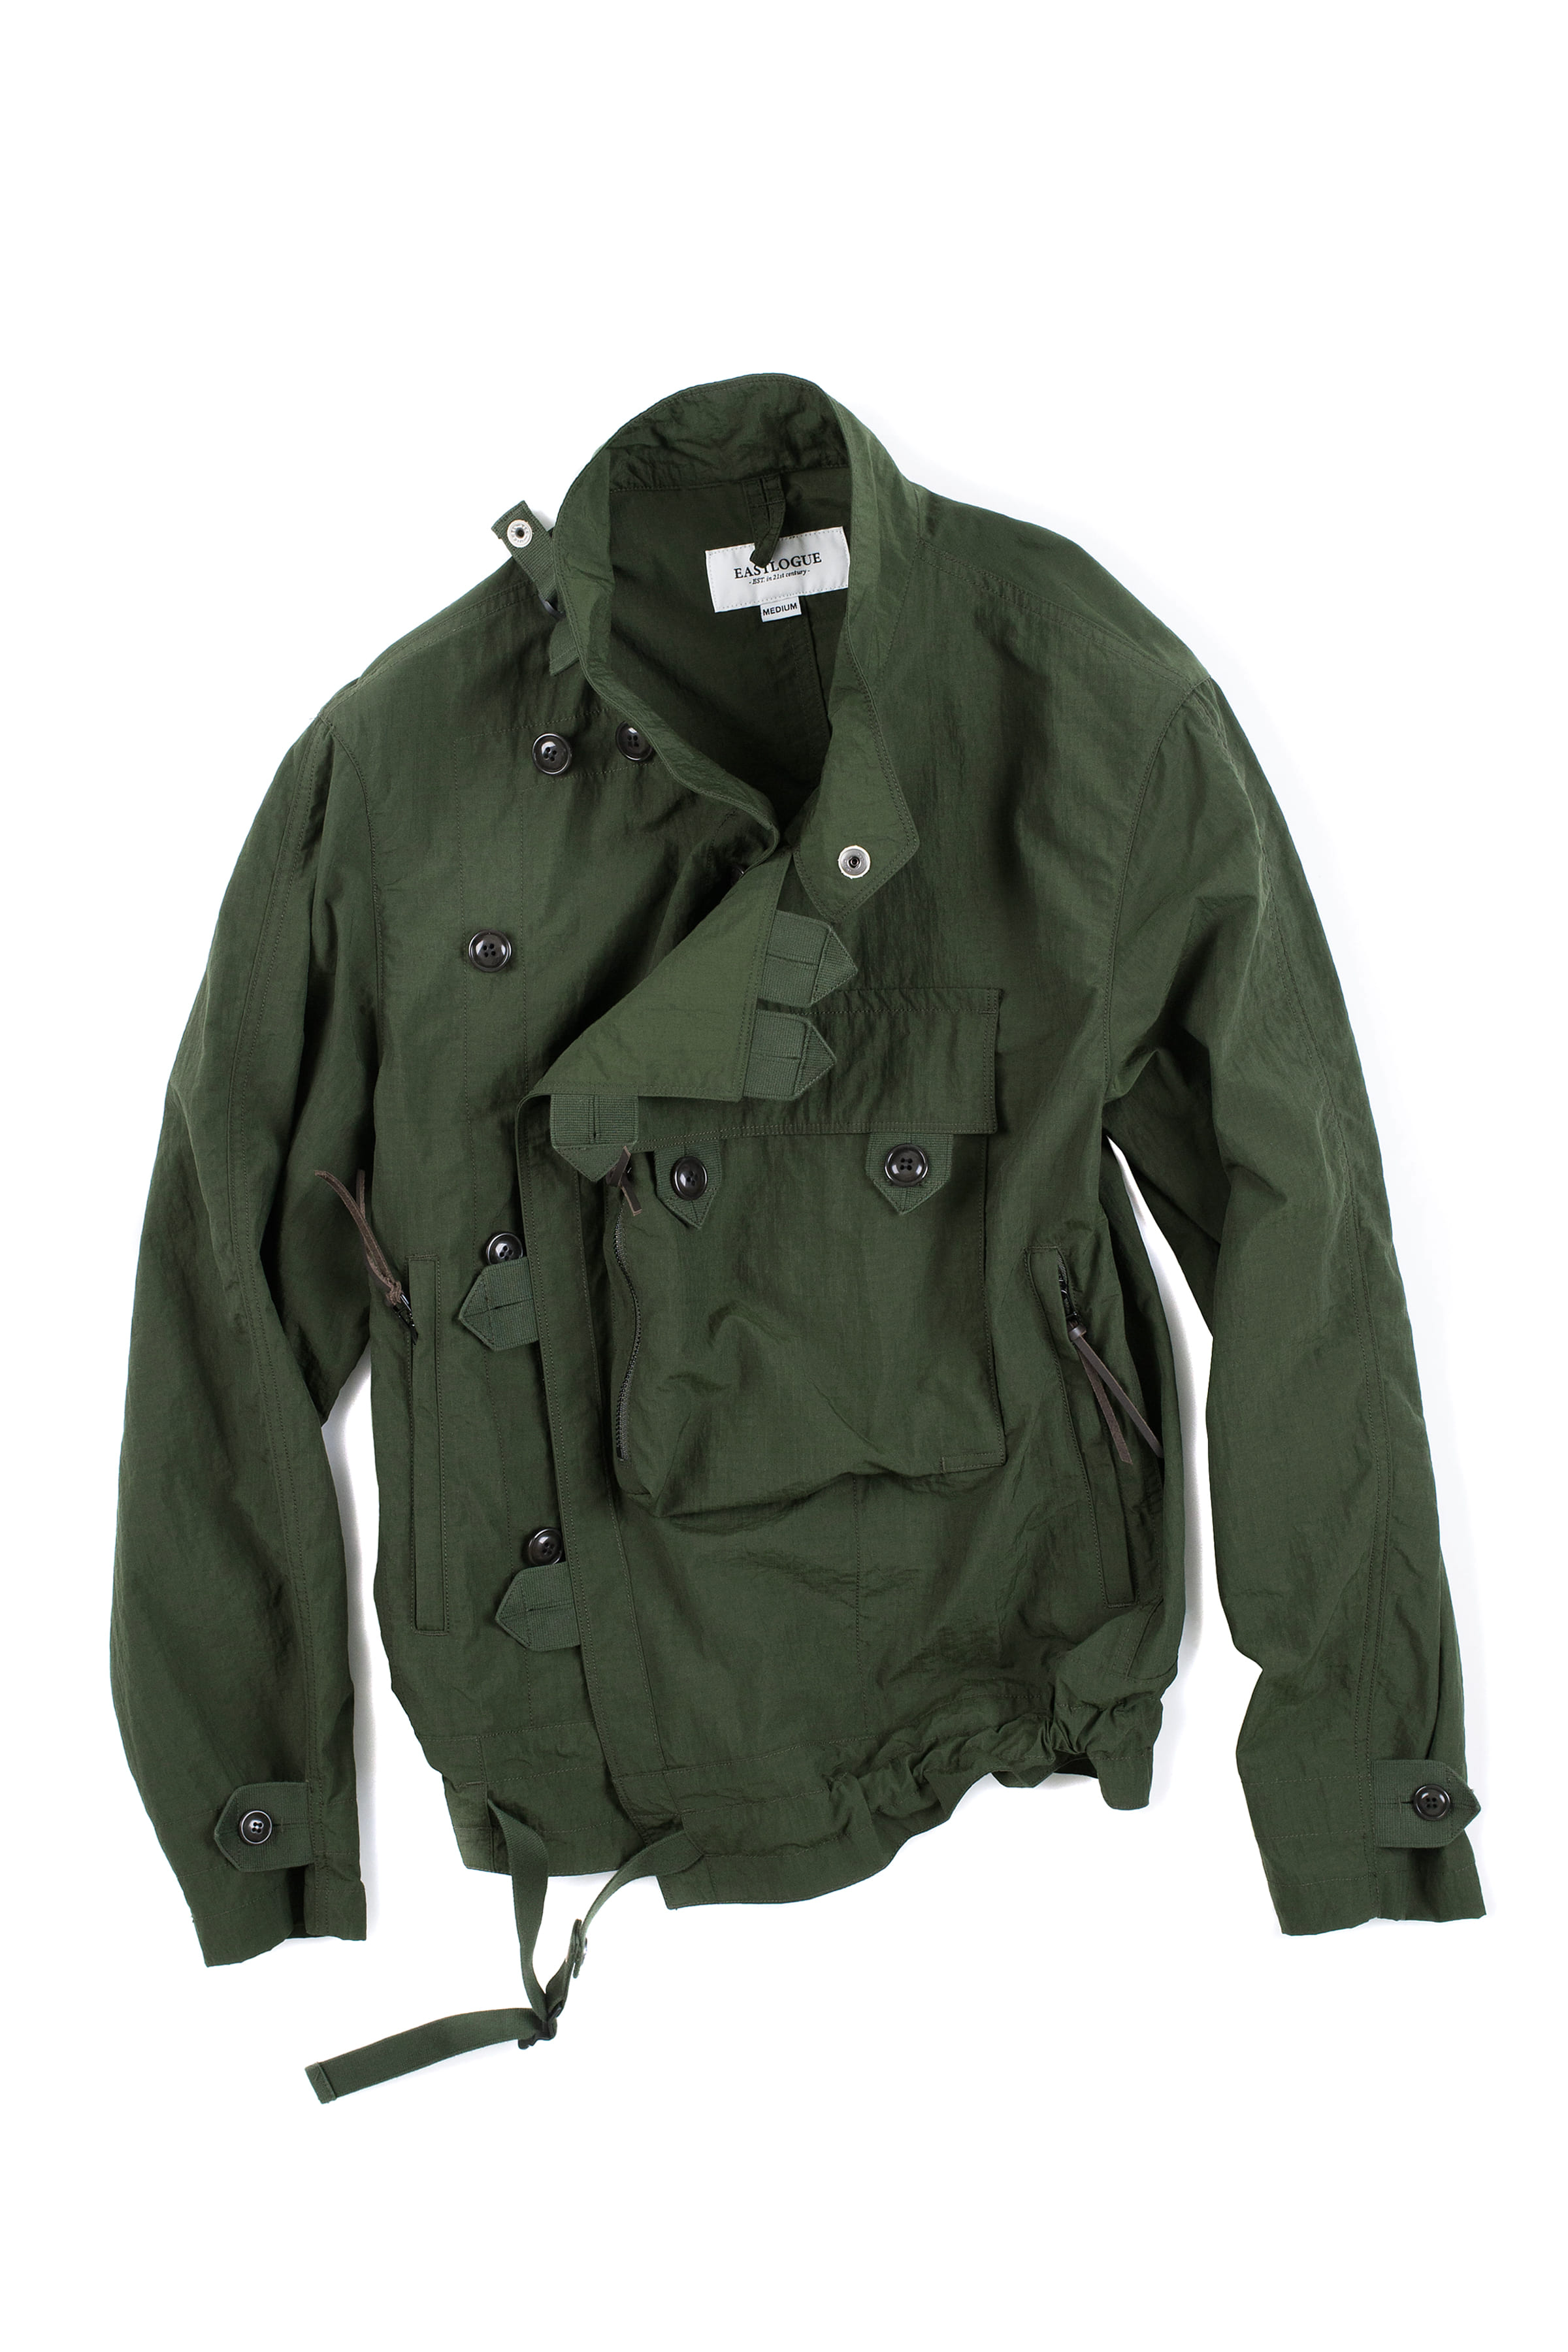 Eastlogue : Motorcycle Jacket (Olive)